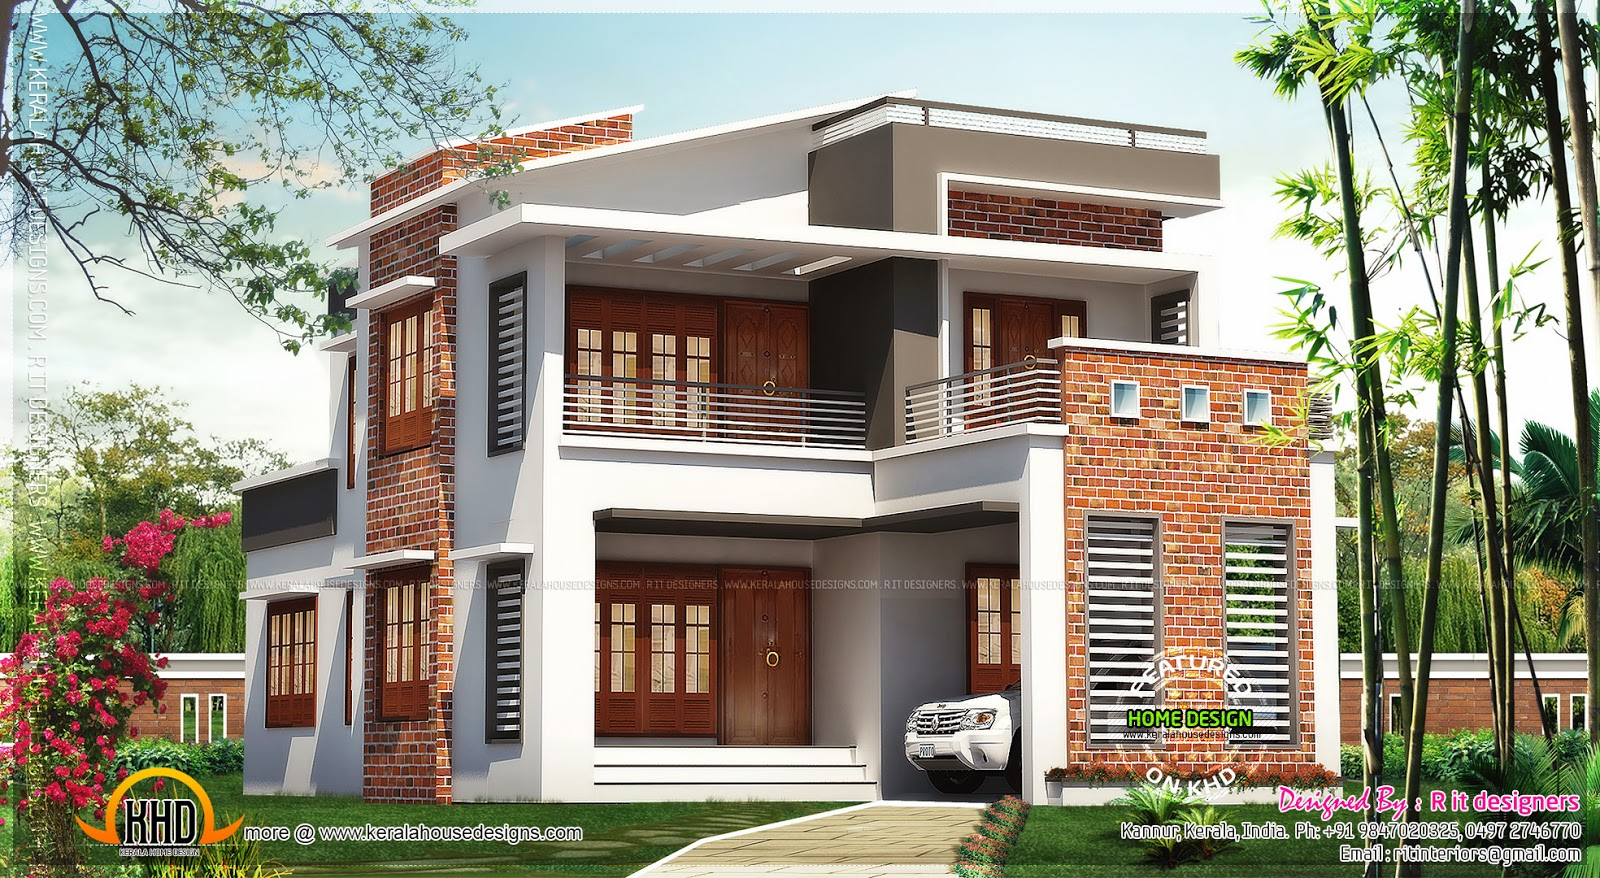 Brick mix house exterior design kerala home design and for Indian homes front design